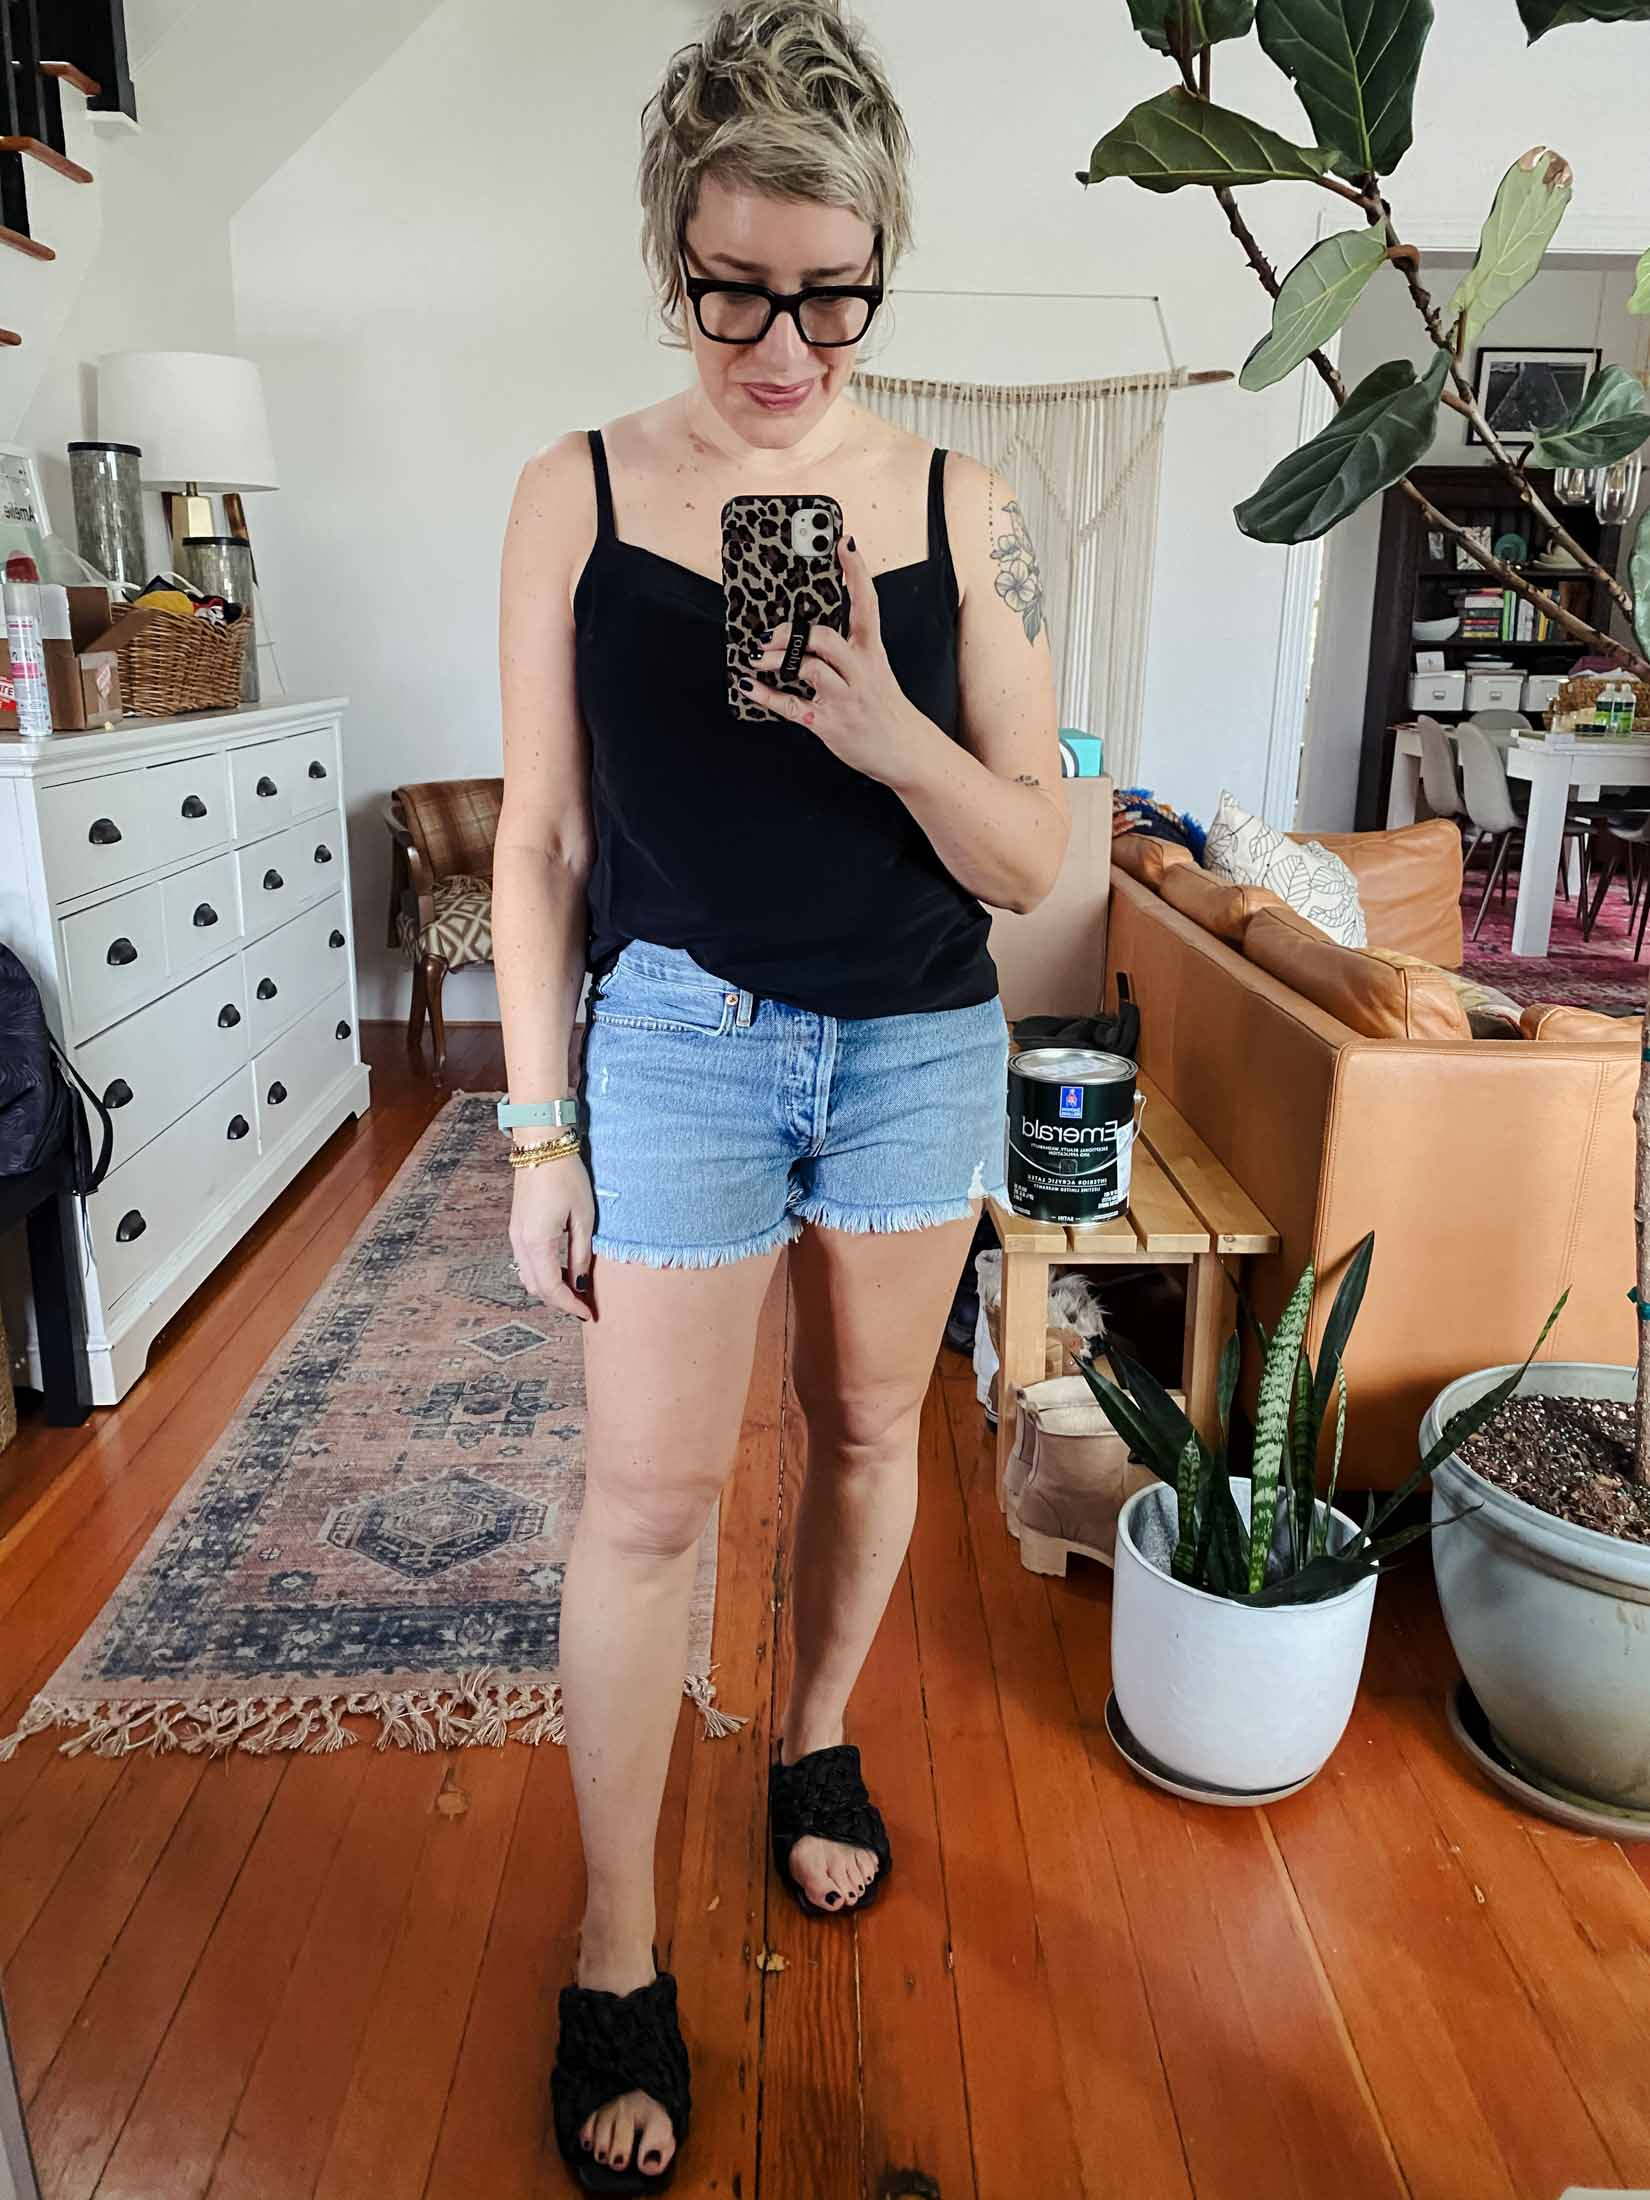 I don't often find a good pair of shorts, but the AGOLDE Parker Vintage cutoffs nail it. They're high waisted, sustainable AND have great washes. Totally worth it.